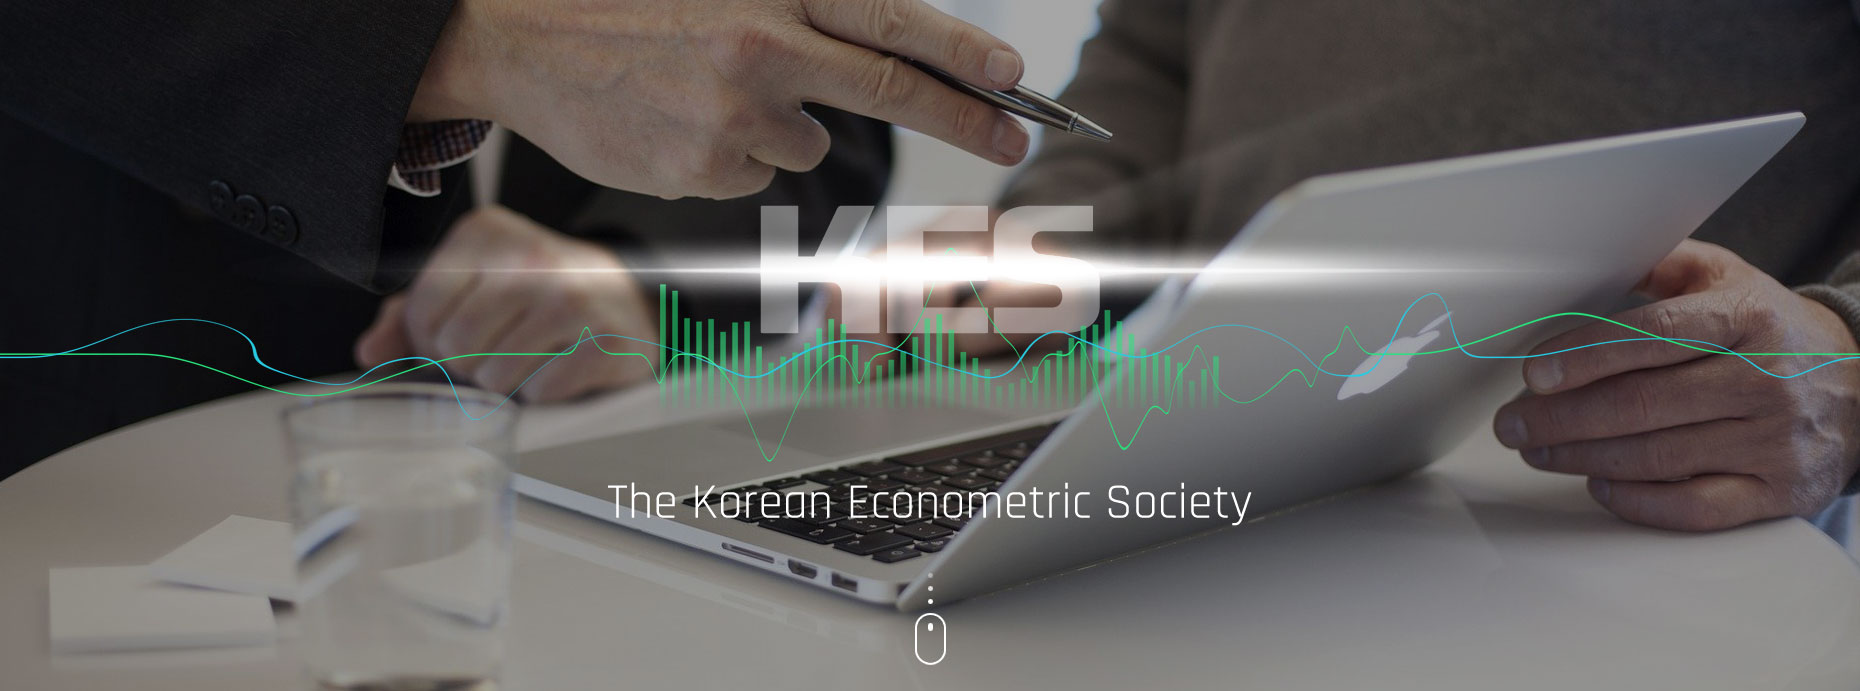 The Korean Econometric Society